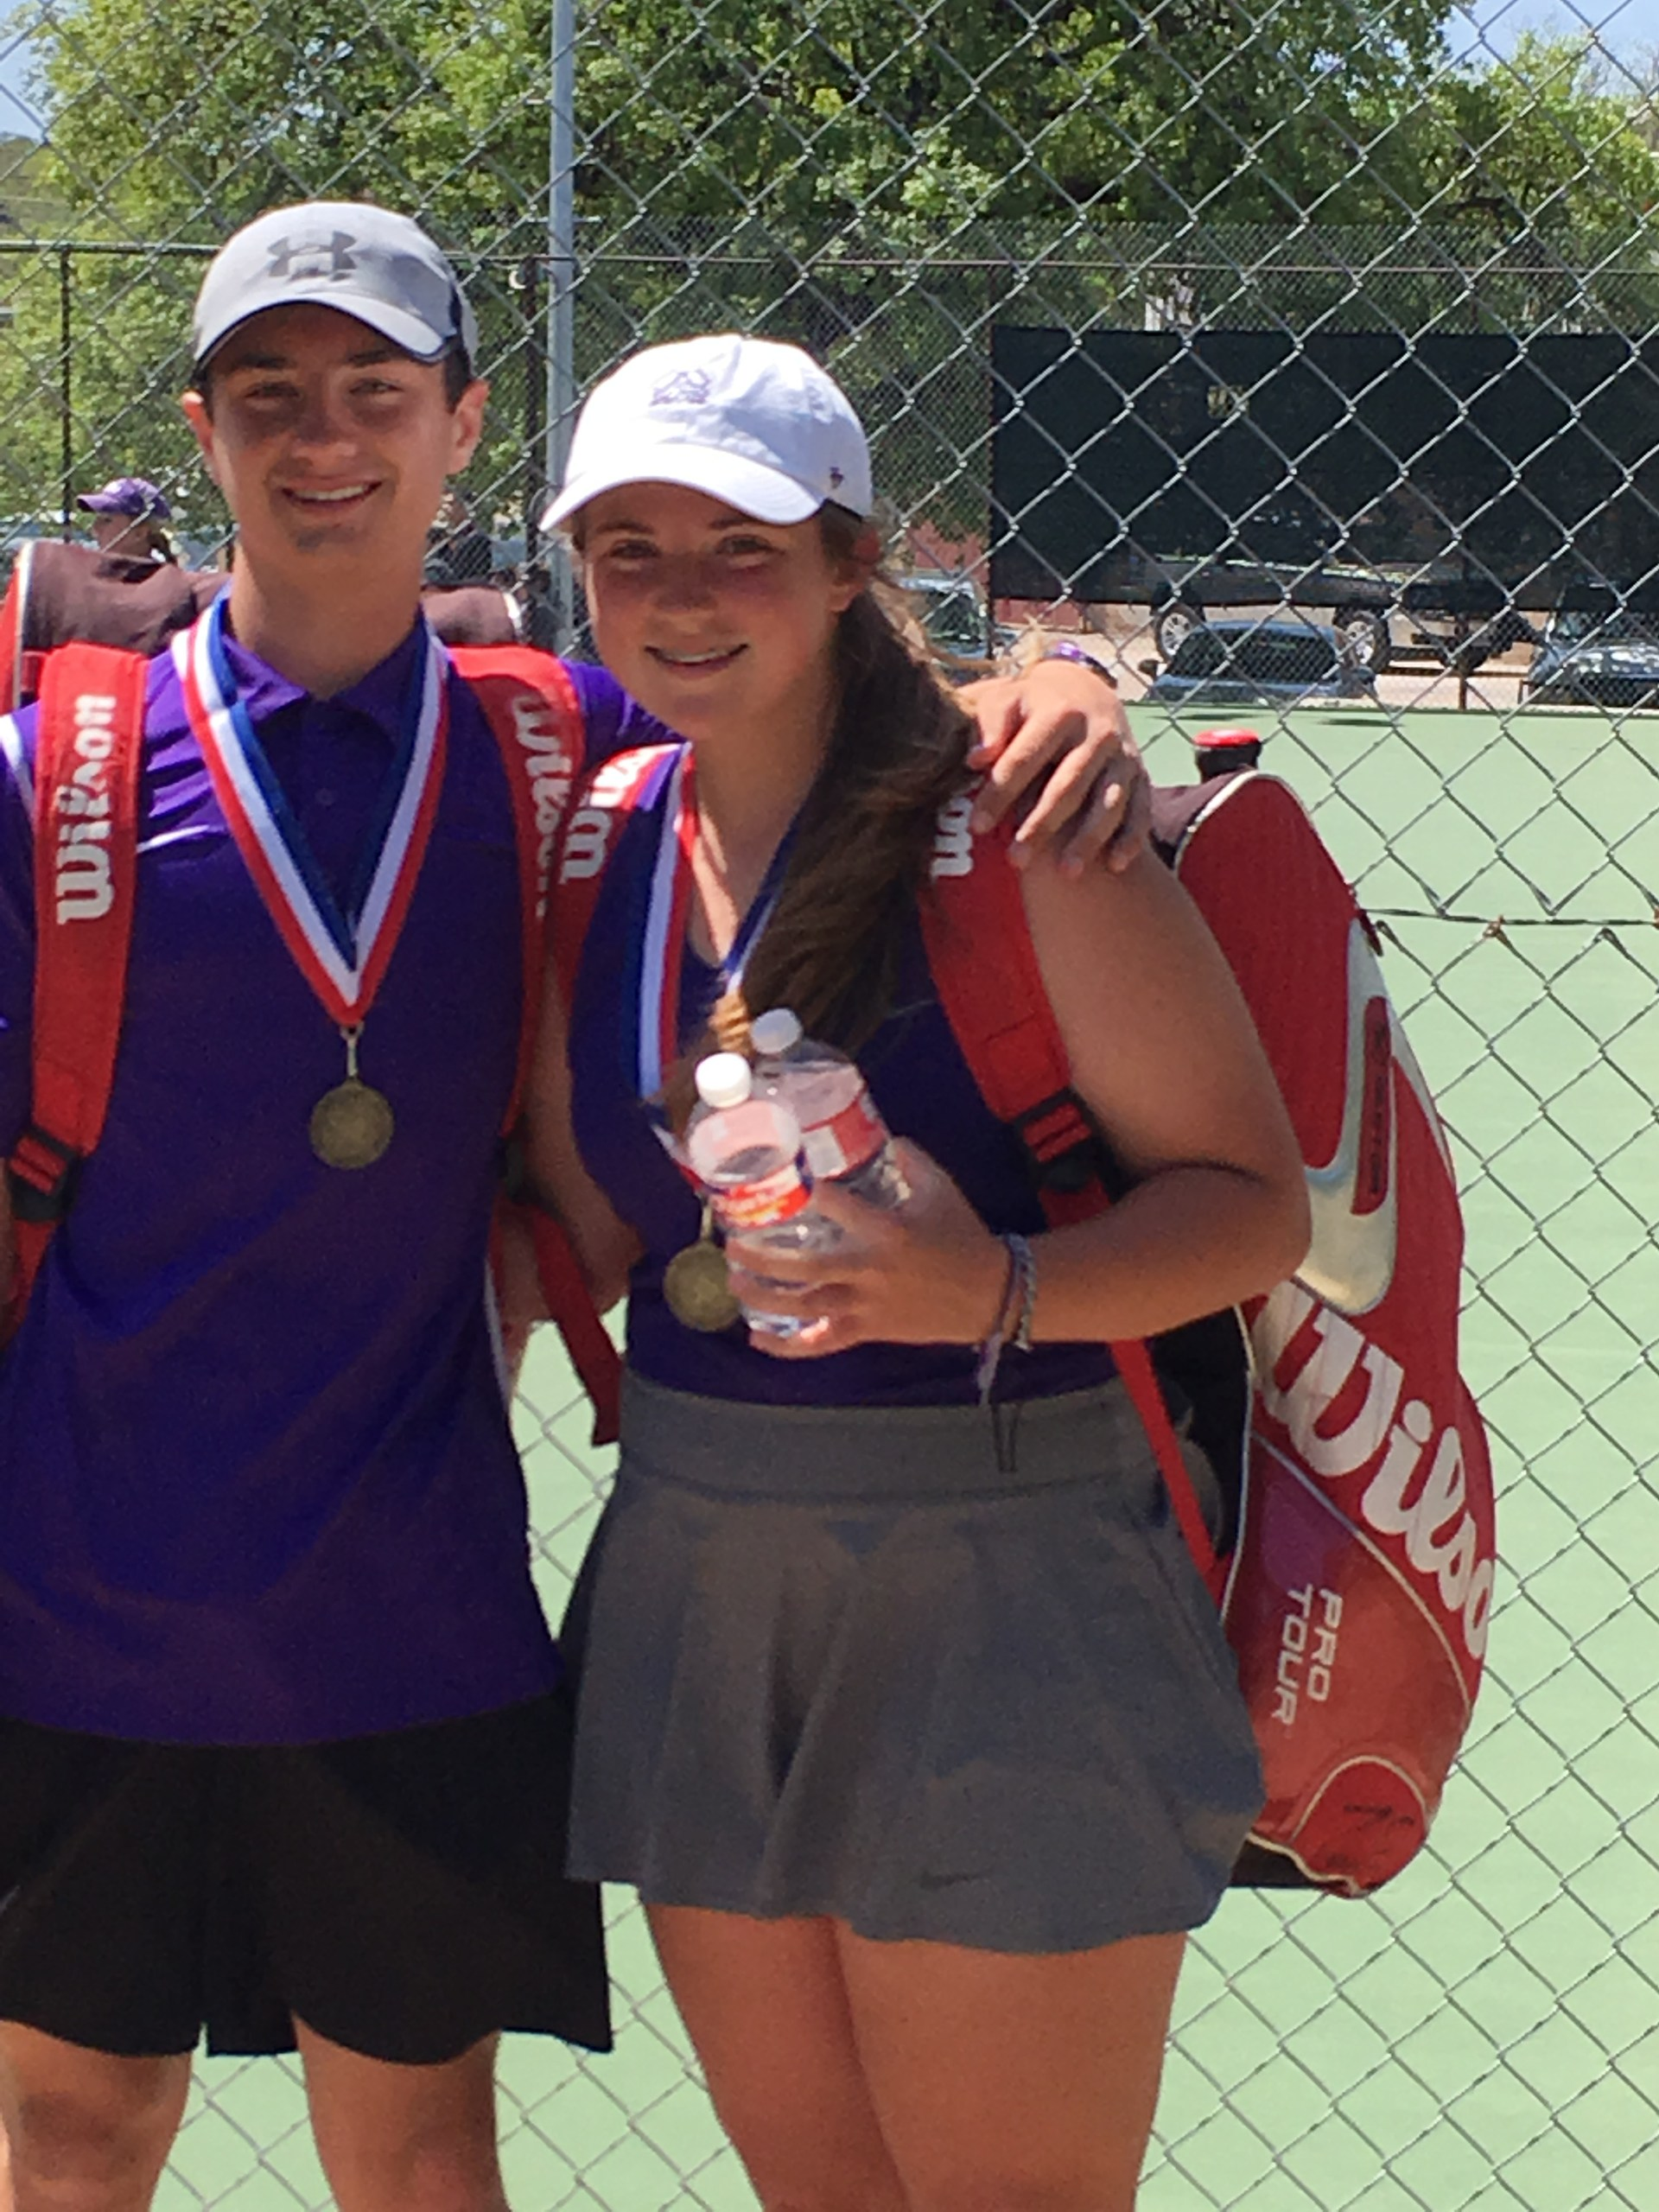 Ty Spencer & Parker Standard - JV Mixed Doubles Champs